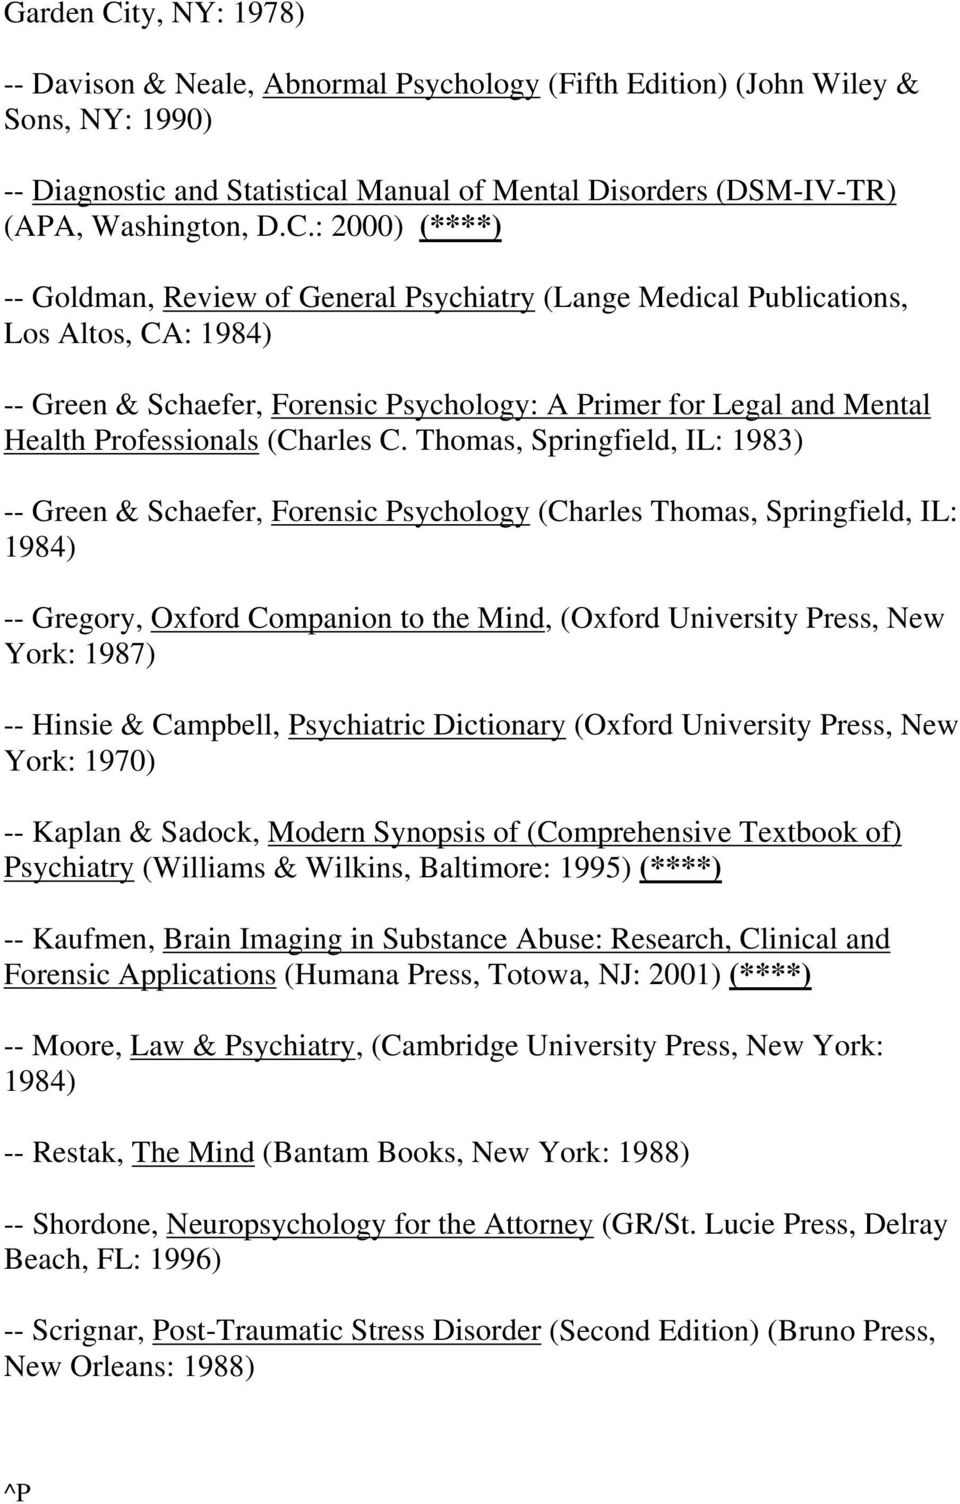 : 2000) (****) -- Goldman, Review of General Psychiatry (Lange Medical Publications, Los Altos, CA: 1984) -- Green & Schaefer, Forensic Psychology: A Primer for Legal and Mental Health Professionals